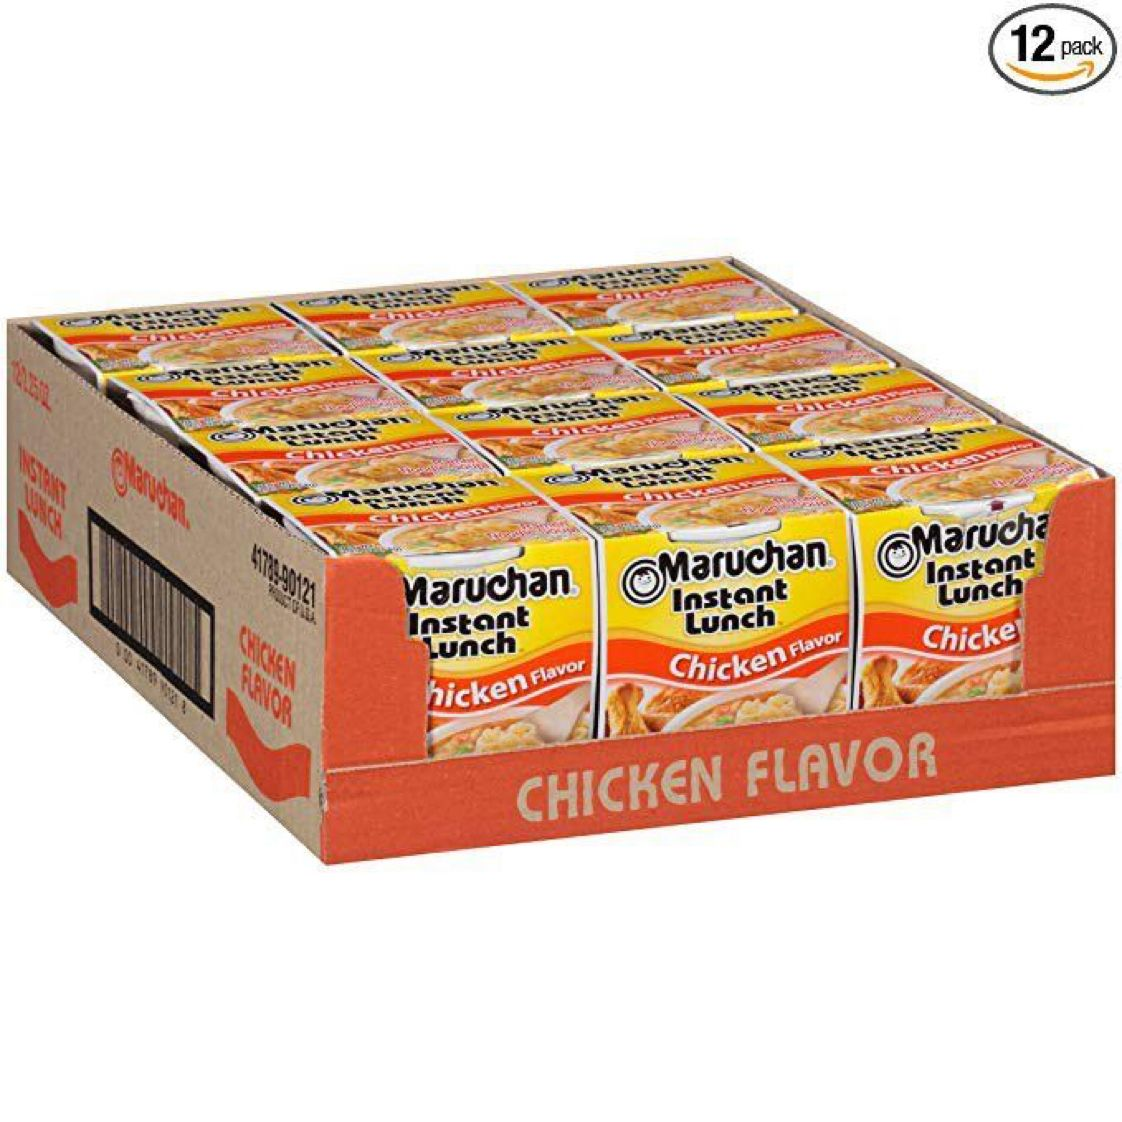 Maruchan Instant Lunch Chicken Flavor, 2.25 Ounce (Pack of 12)  $3.84 with Free Prime Shipping   #steals #deals #stealsanddeals